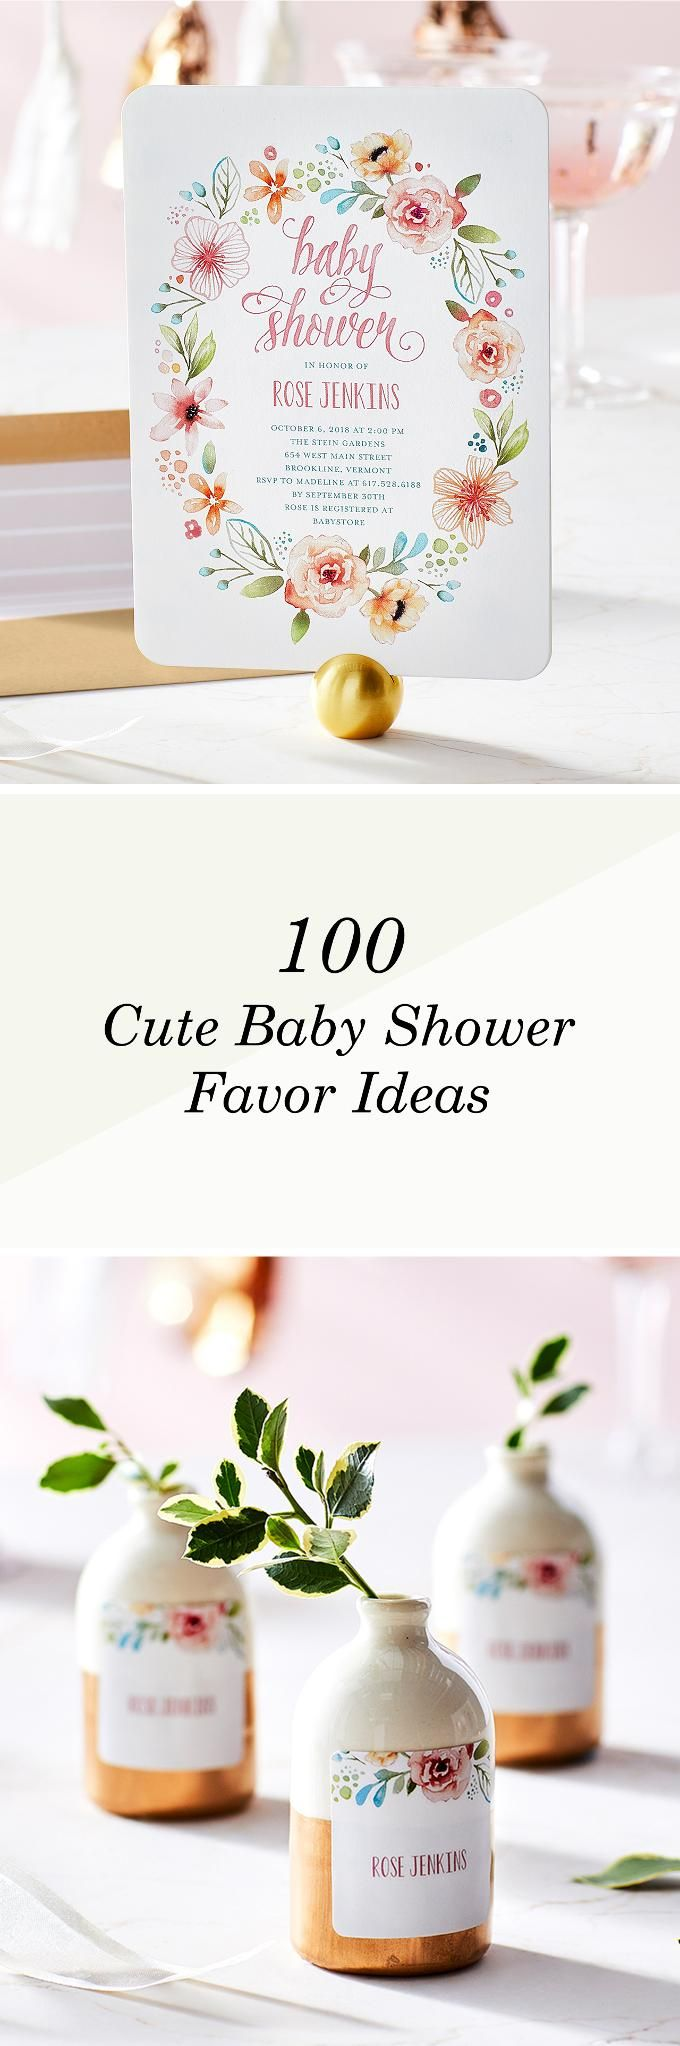 A baby shower is the perfect way to celebrate the arrival of your new little bundle of joy with all your family and friends. And at the end of the party, there's no better way to thank your guests for coming than with creative baby shower favors. Sort by category to find a favor for your party!